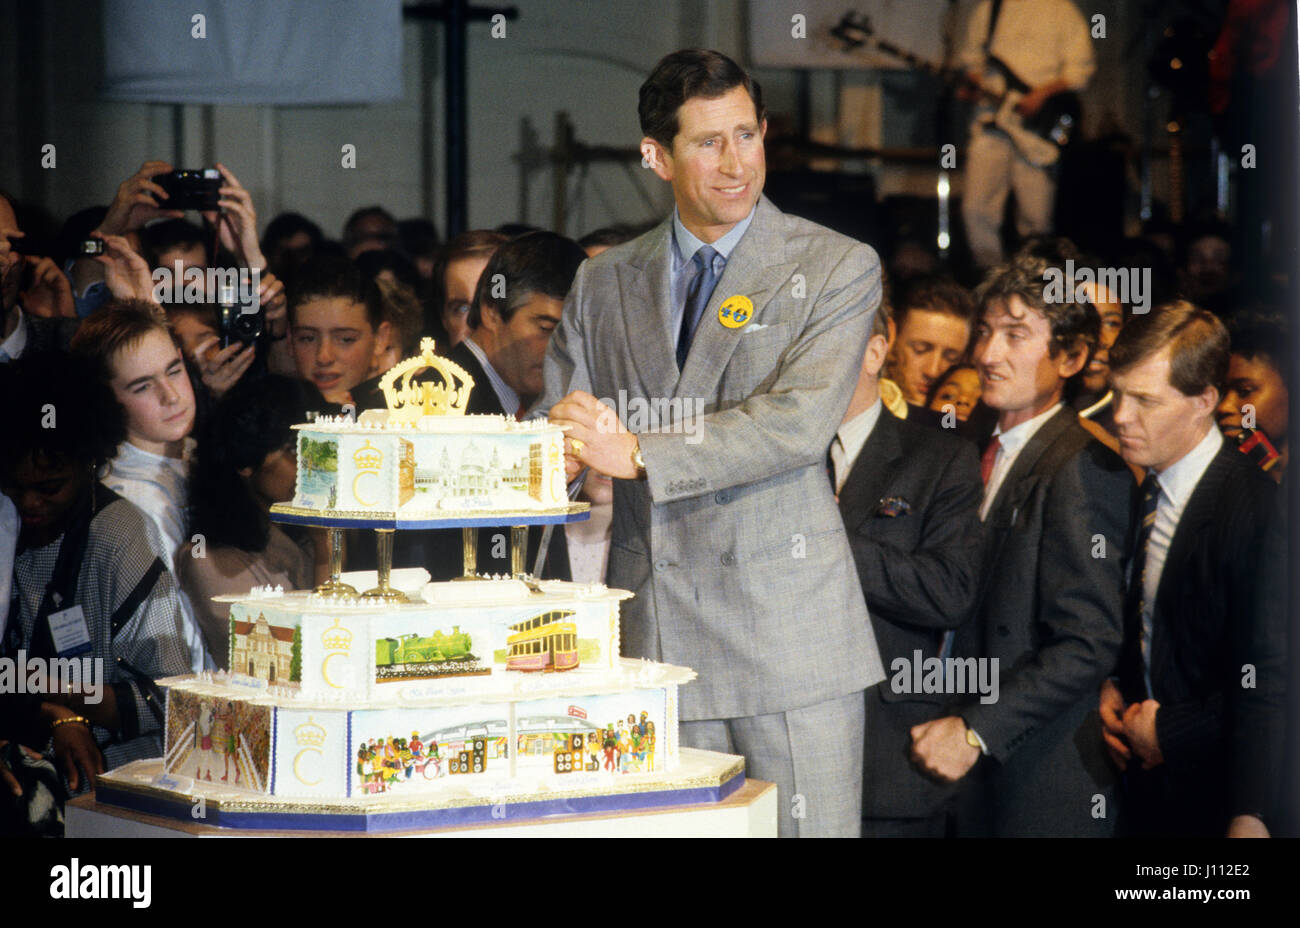 Prince Charles 40th Birthday In Birmingham To Launch The Princes Youth Business Trust In 1988 Stock Photo Alamy